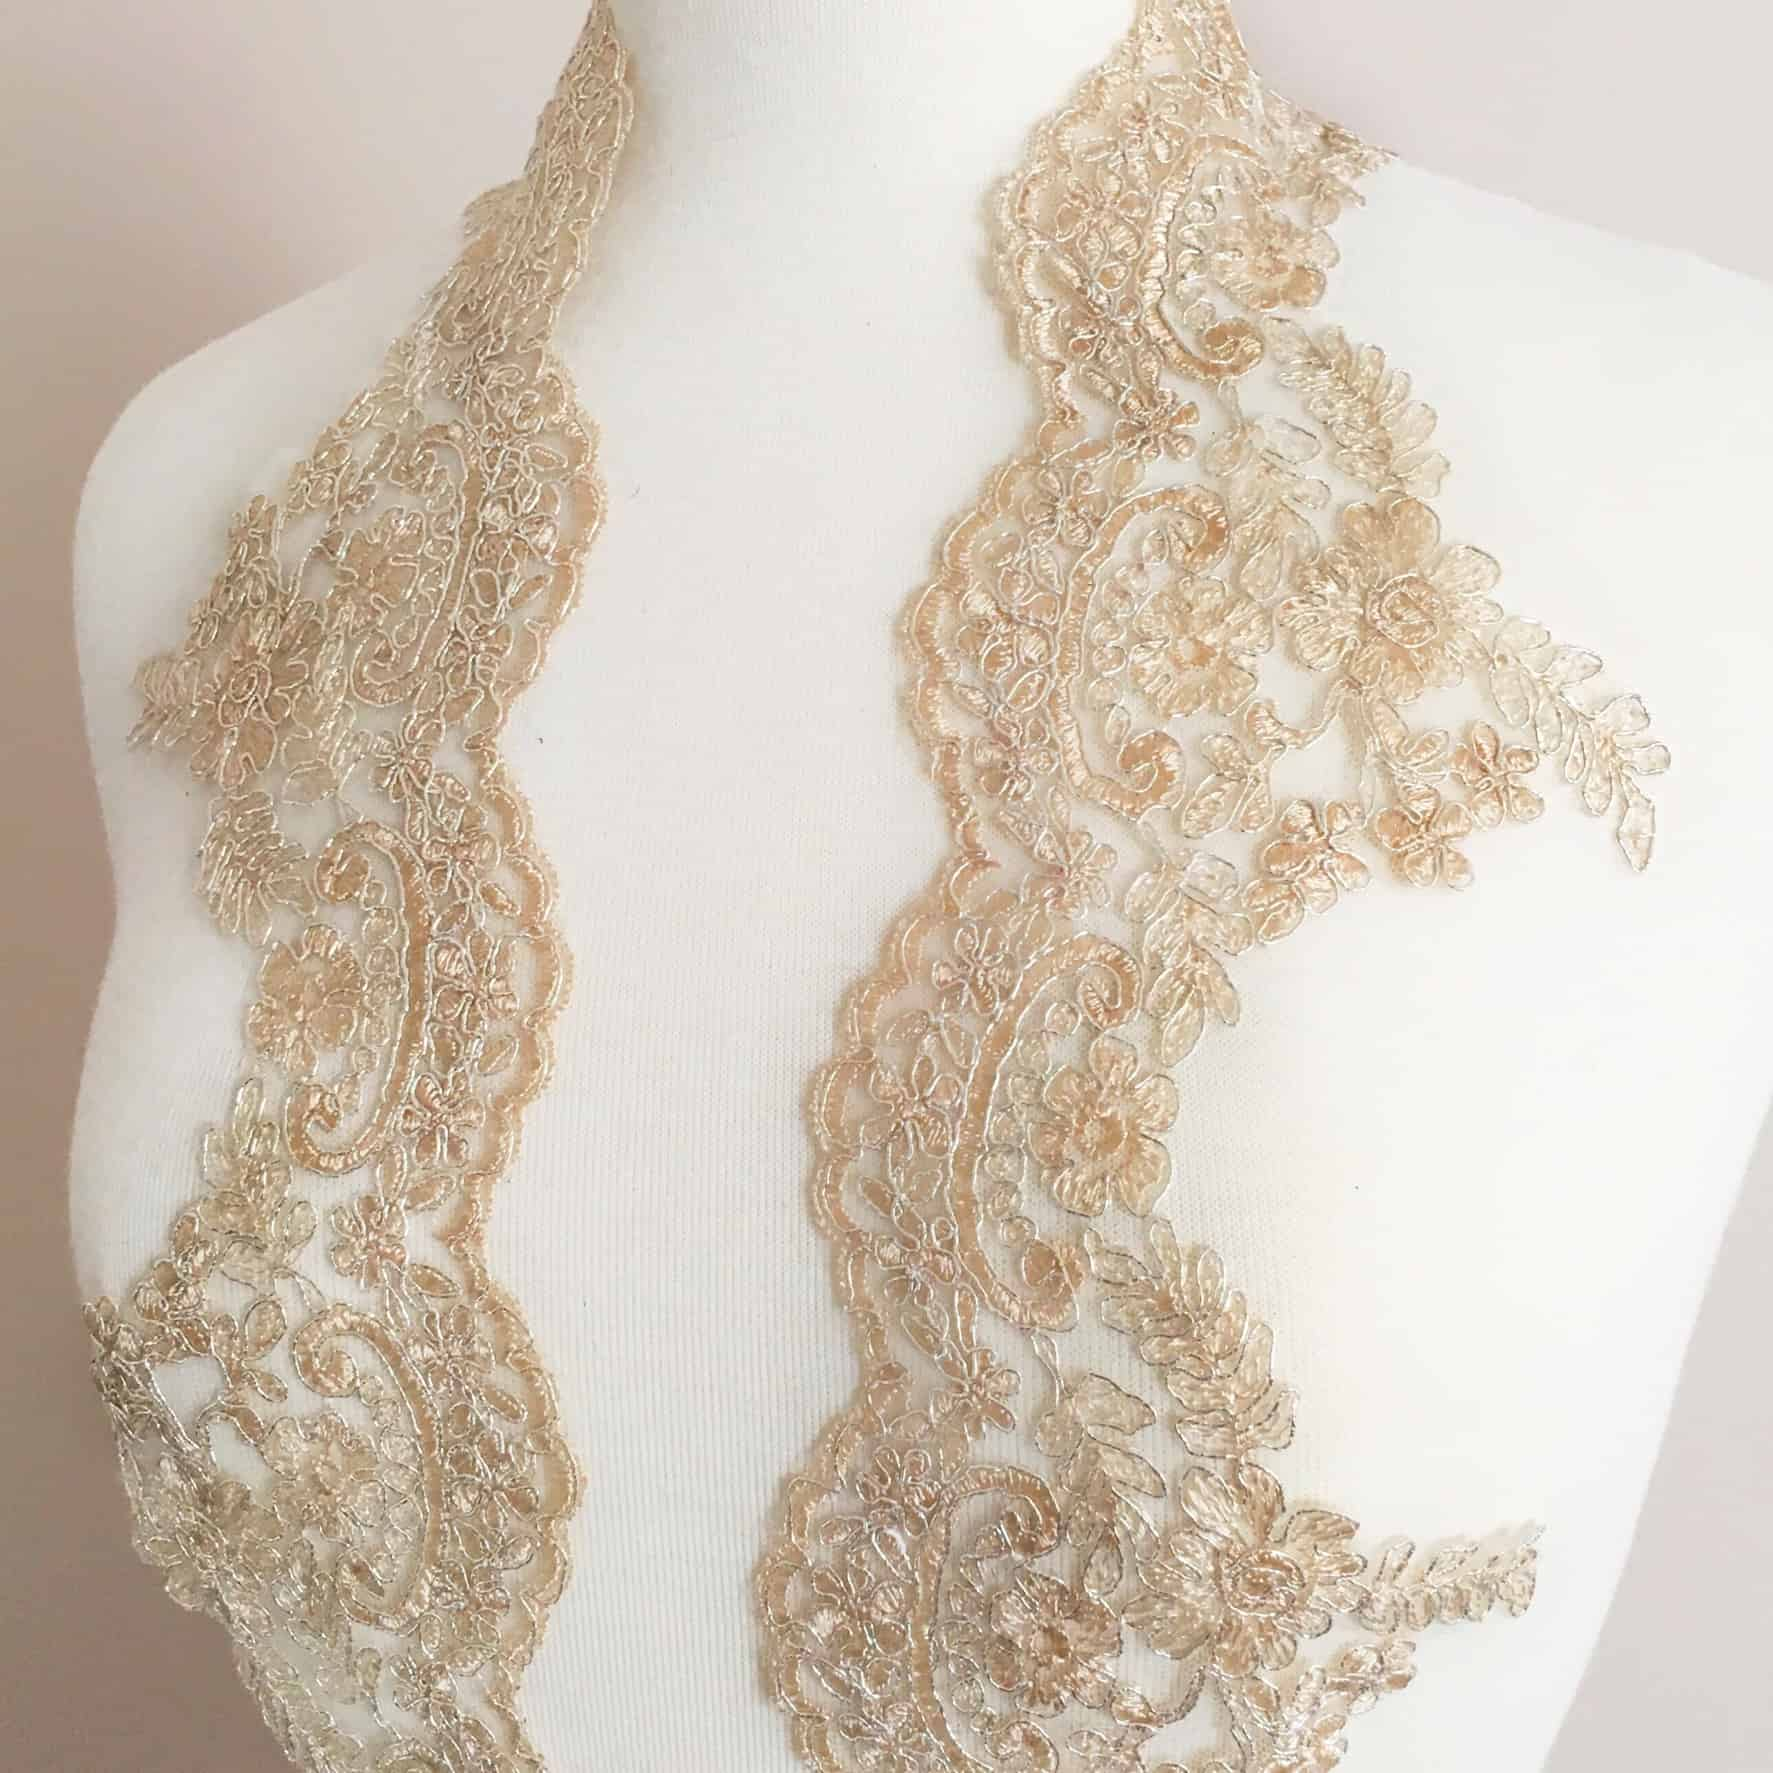 Jillian Re-Embroidered Lace Trim